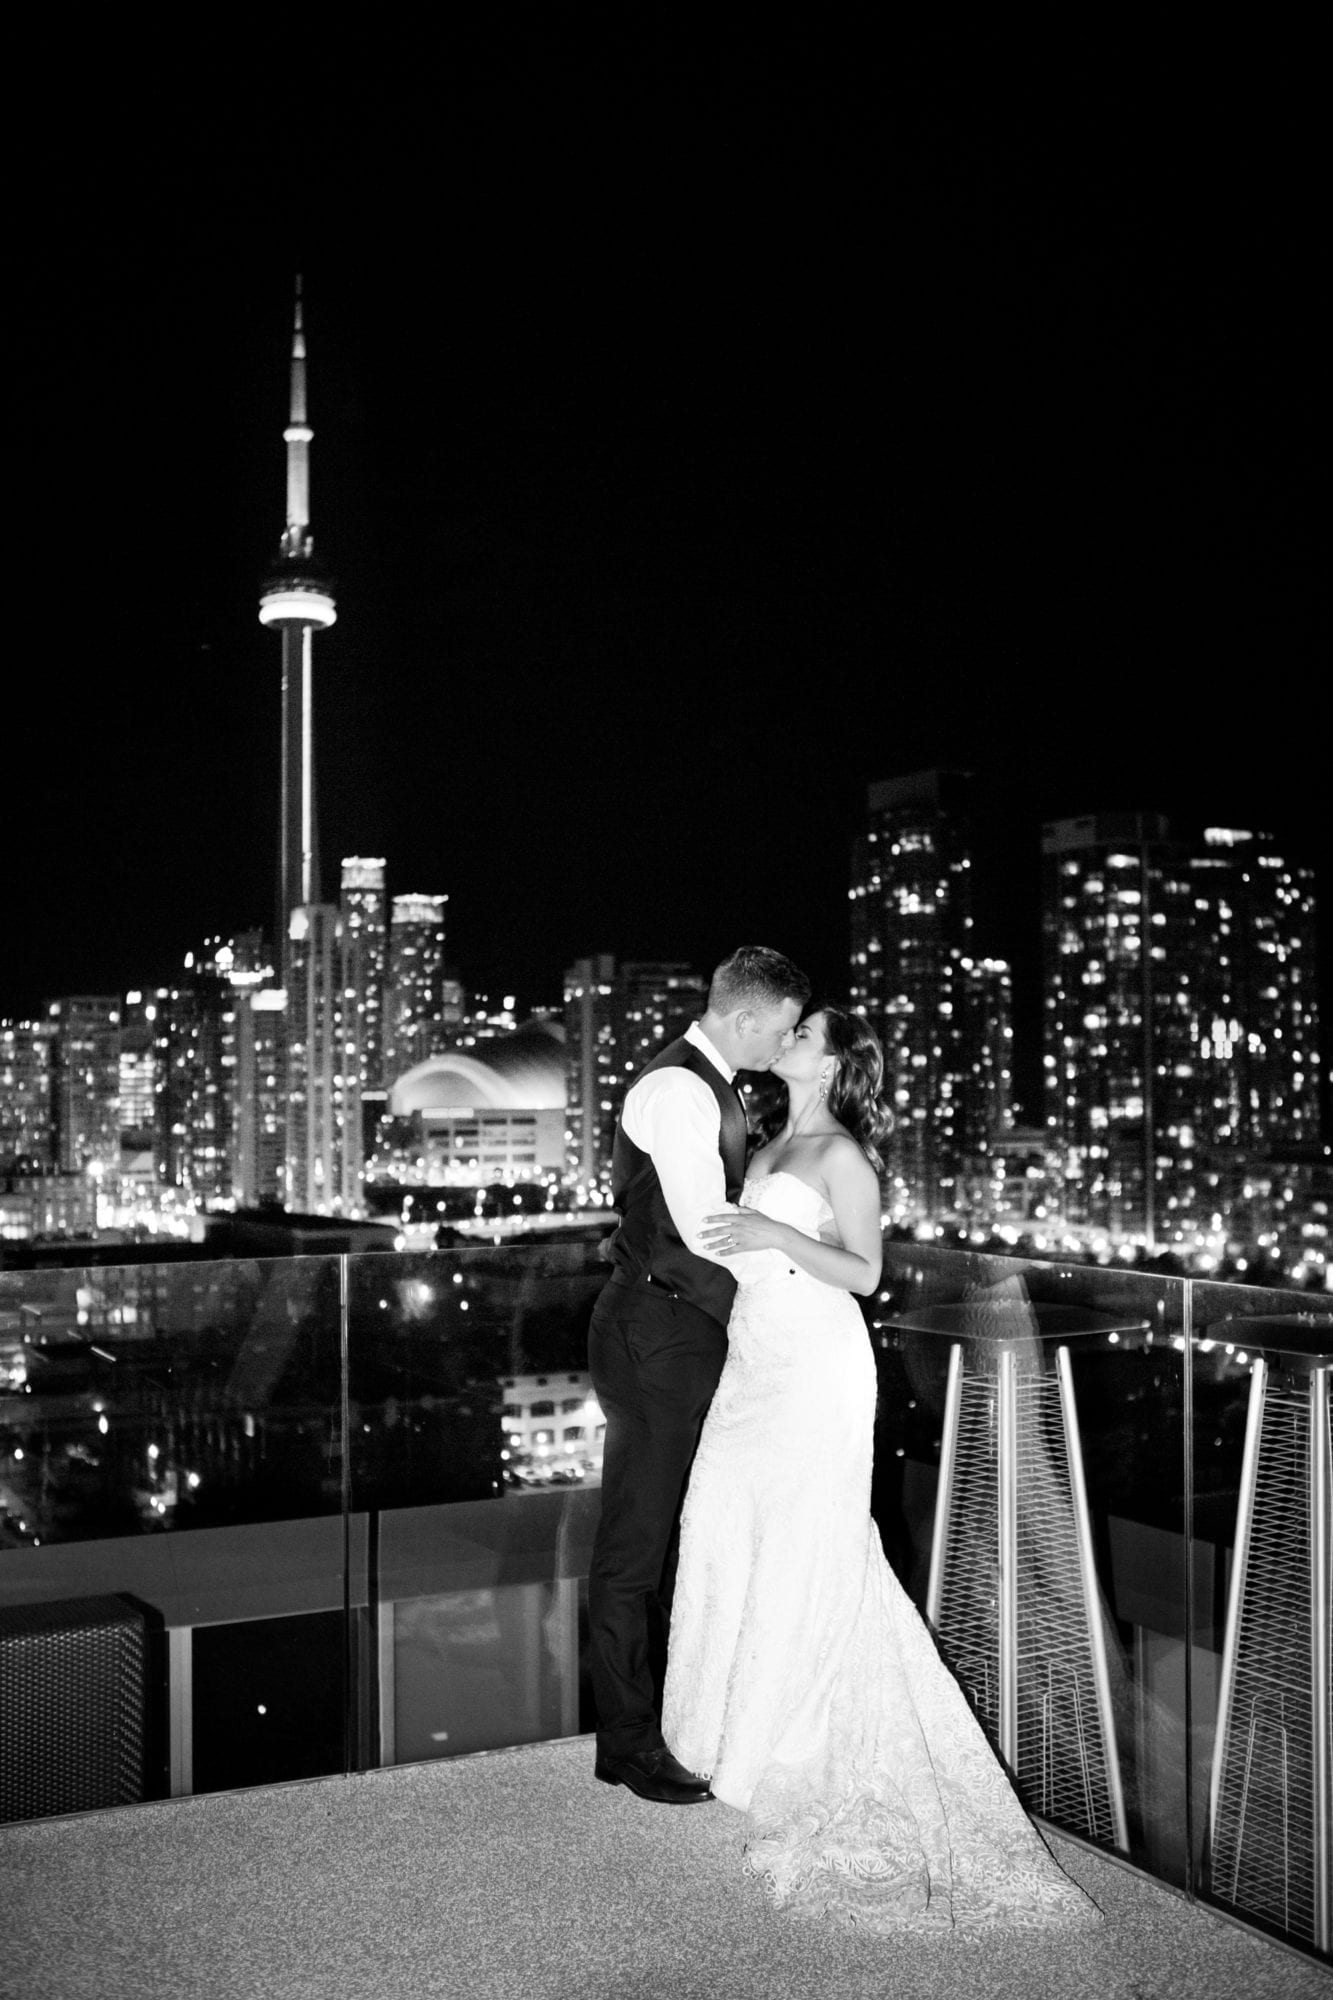 Night CN Tower Kiss Black and White Zsuzsi Pal Photography Toronto Wedding